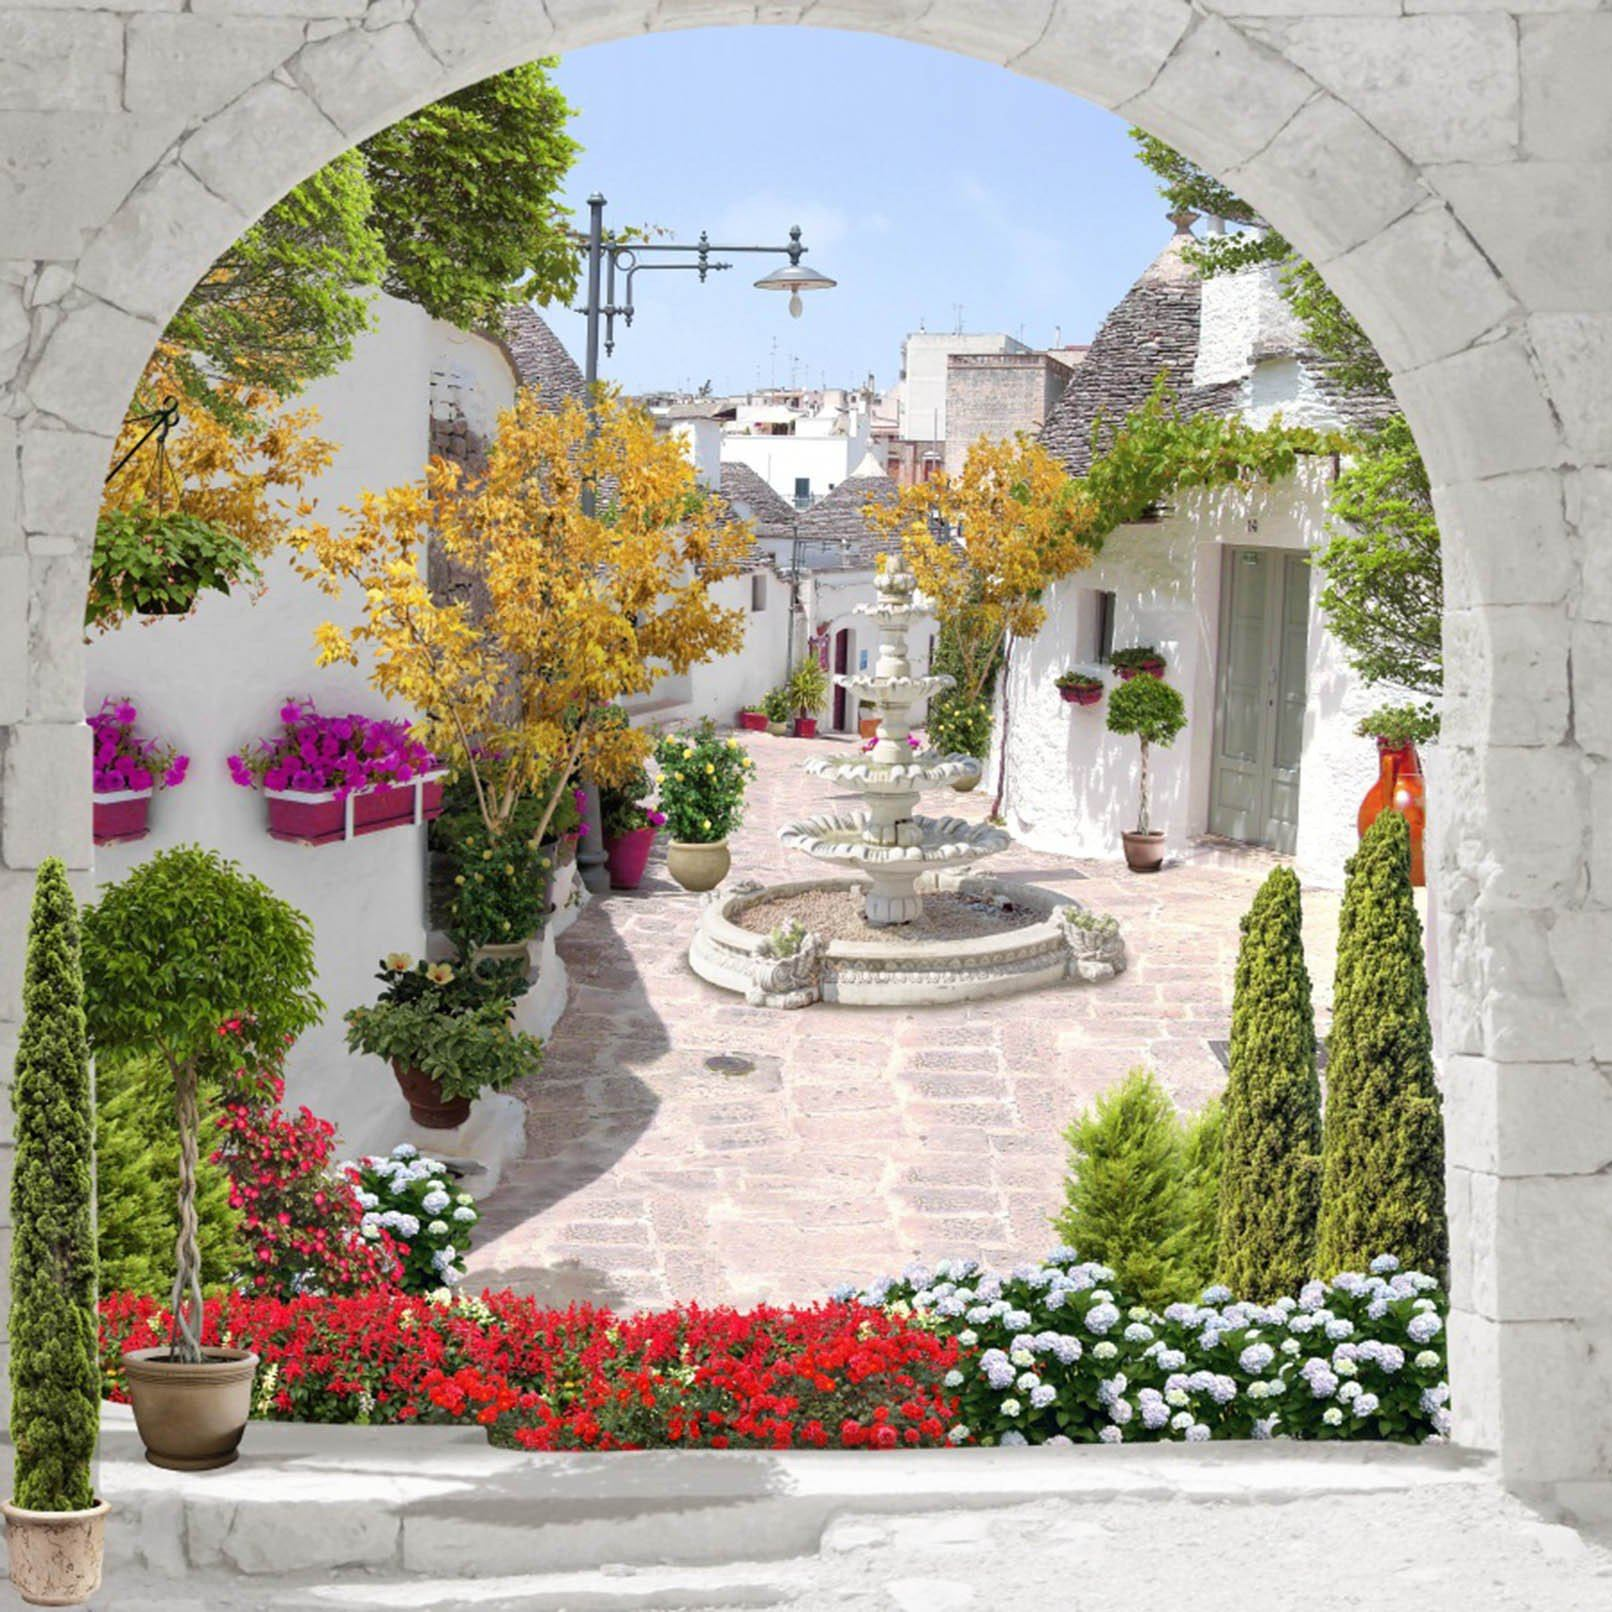 3D Arches Town Scenery 305 Garage Door Mural Wallpaper AJ Wallpaper